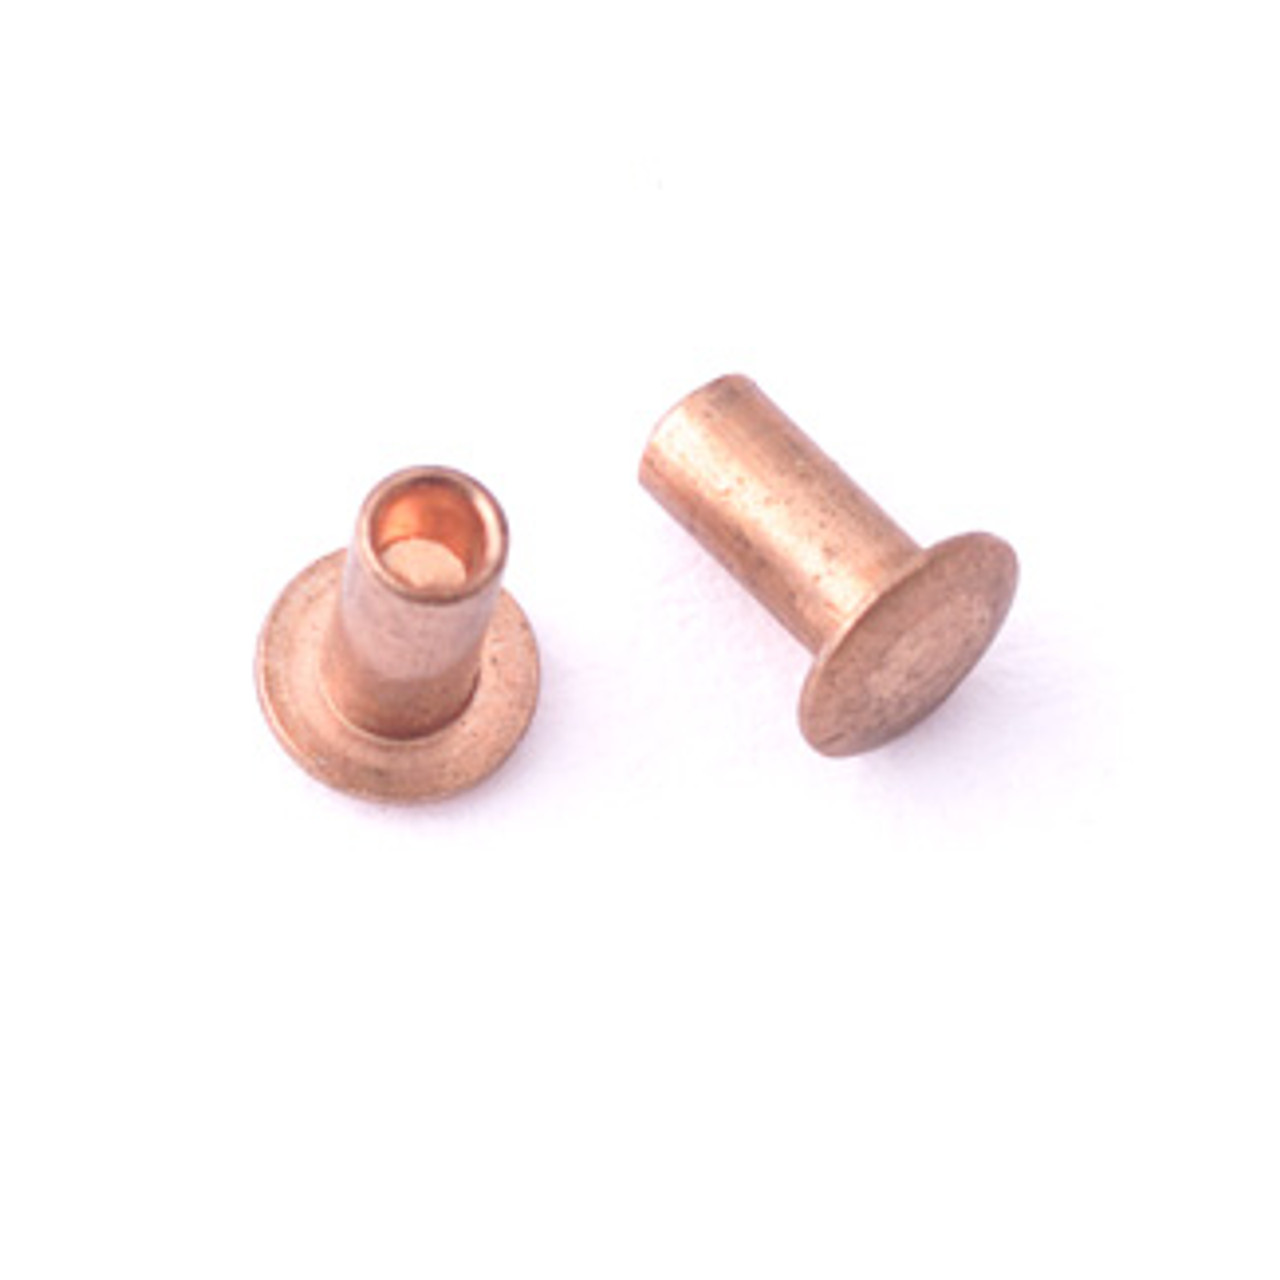 "1/16"" Dia. 1/8"" Long Copper Rivet (50pcs.)"